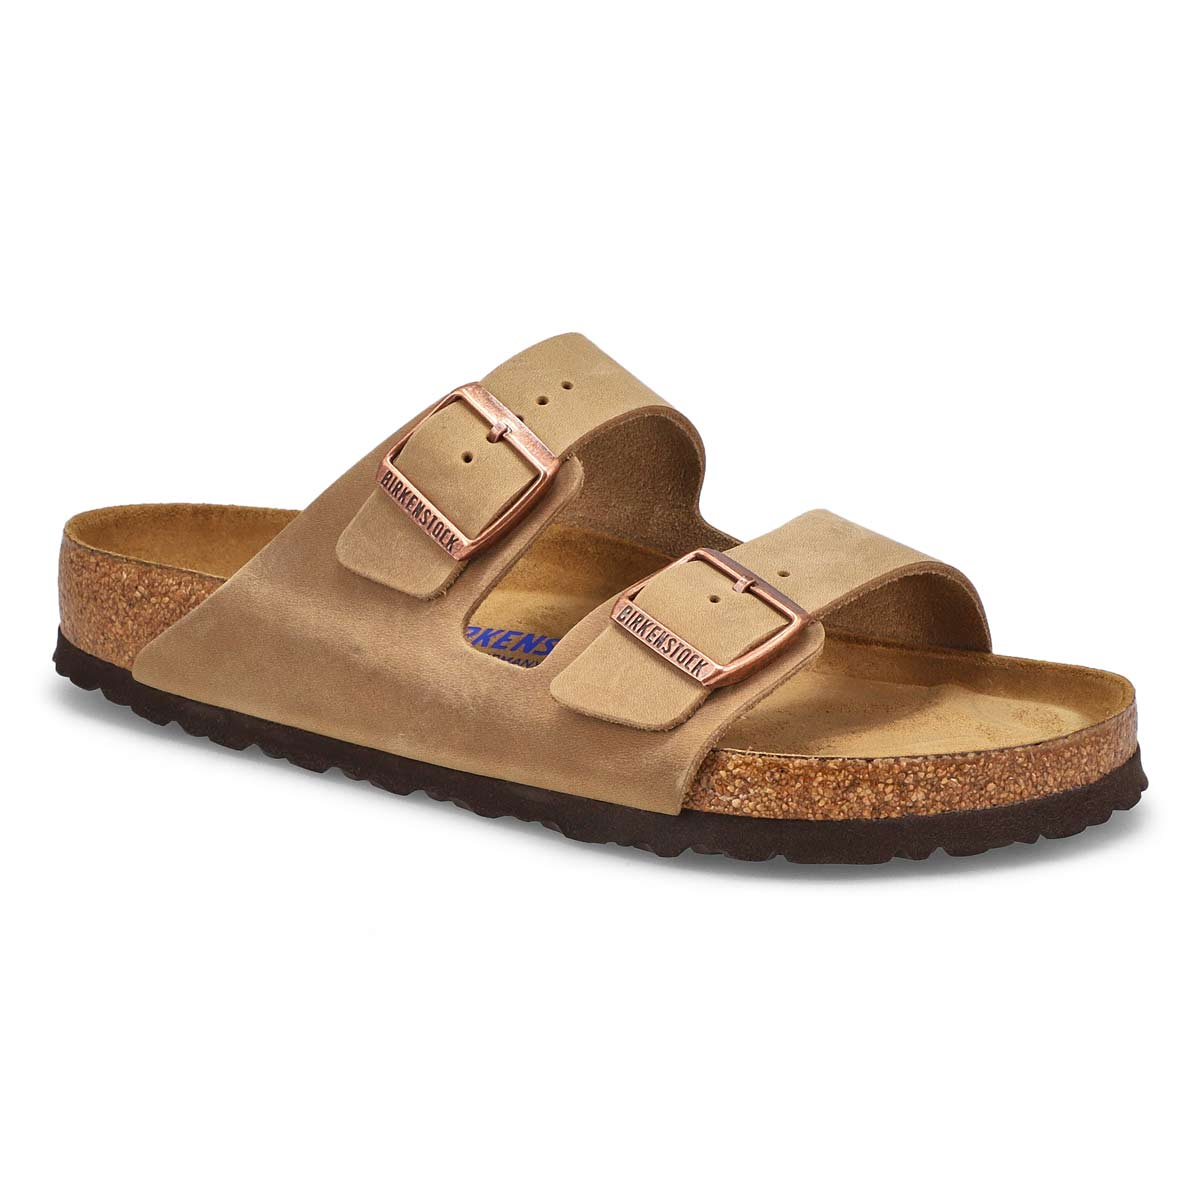 Mns Arizona tobacco 2 strap sandal SF